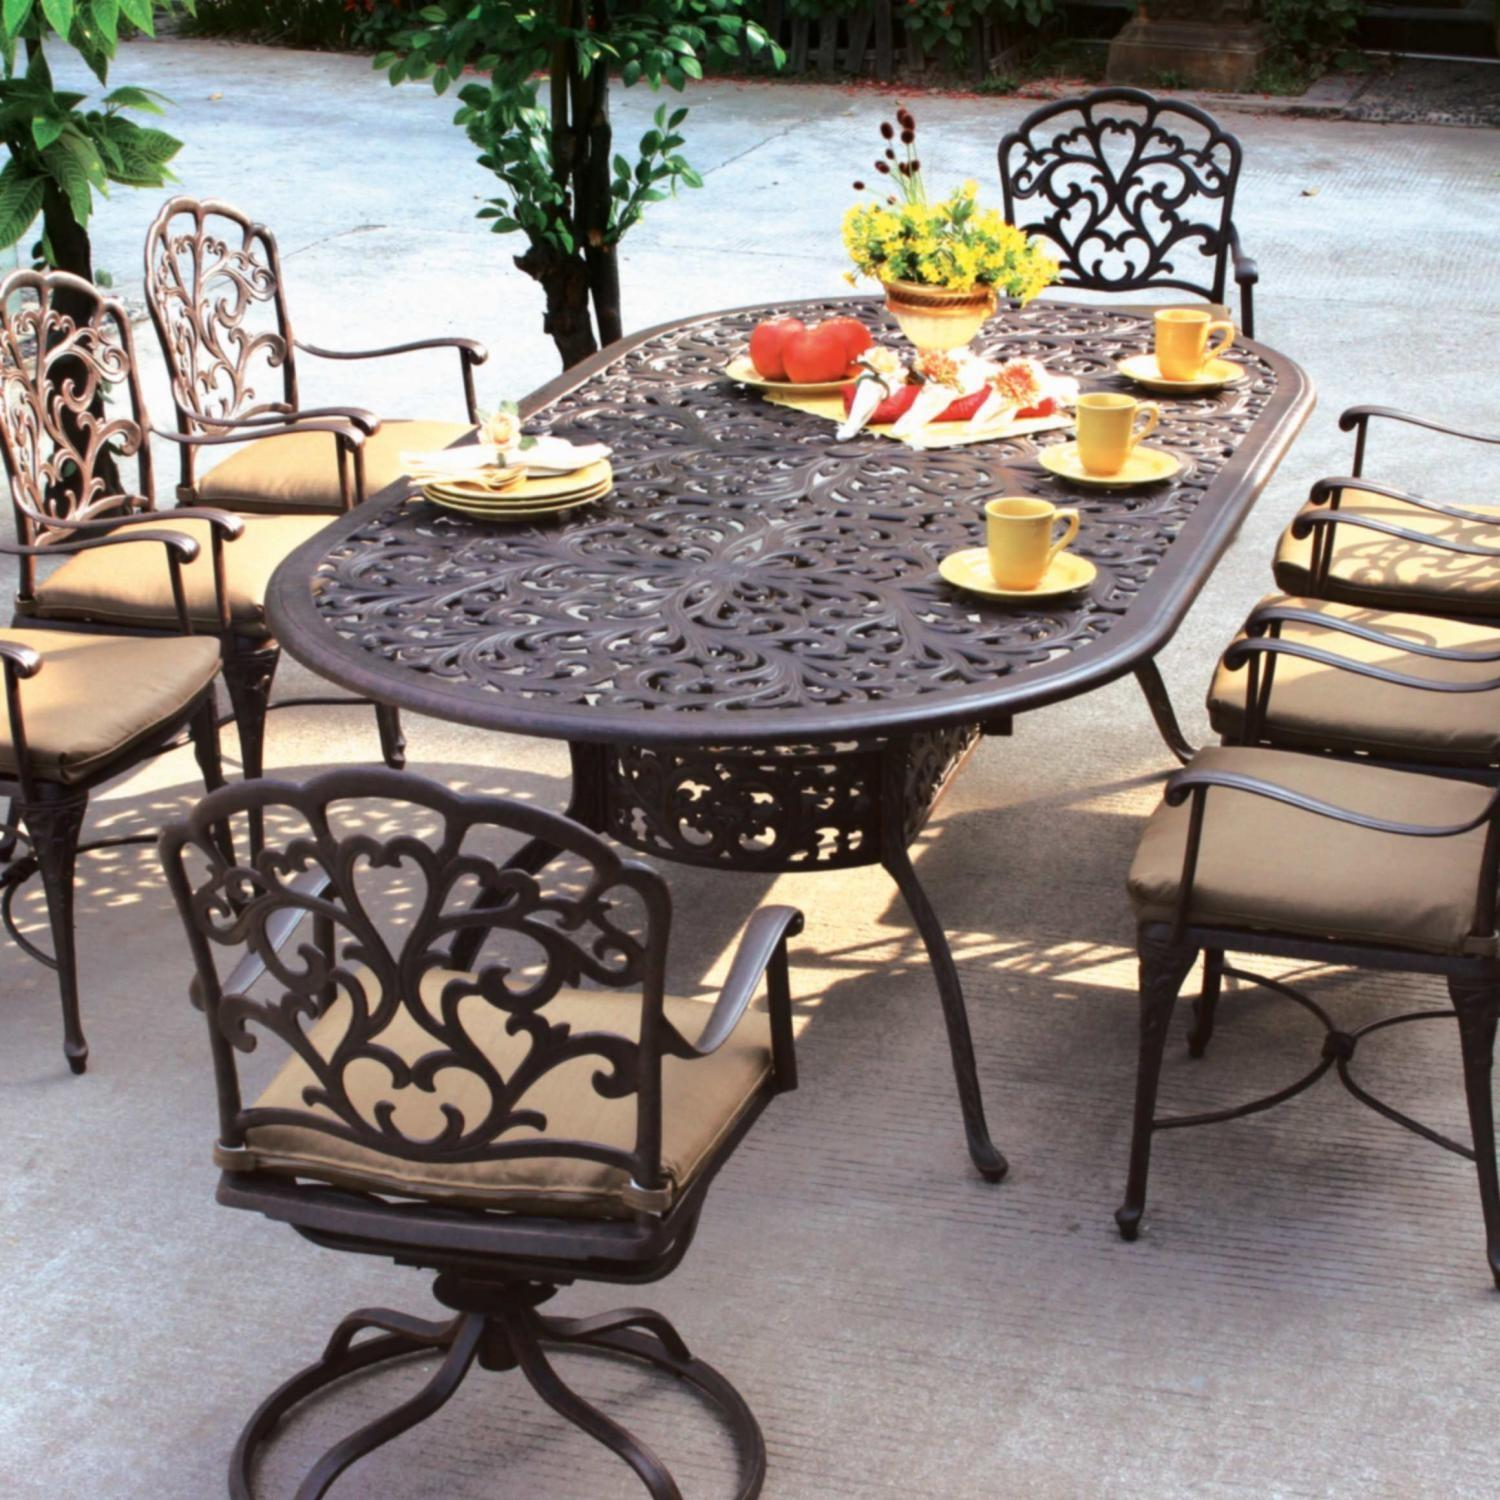 Patio Dining Table Chairs Costco Furniture